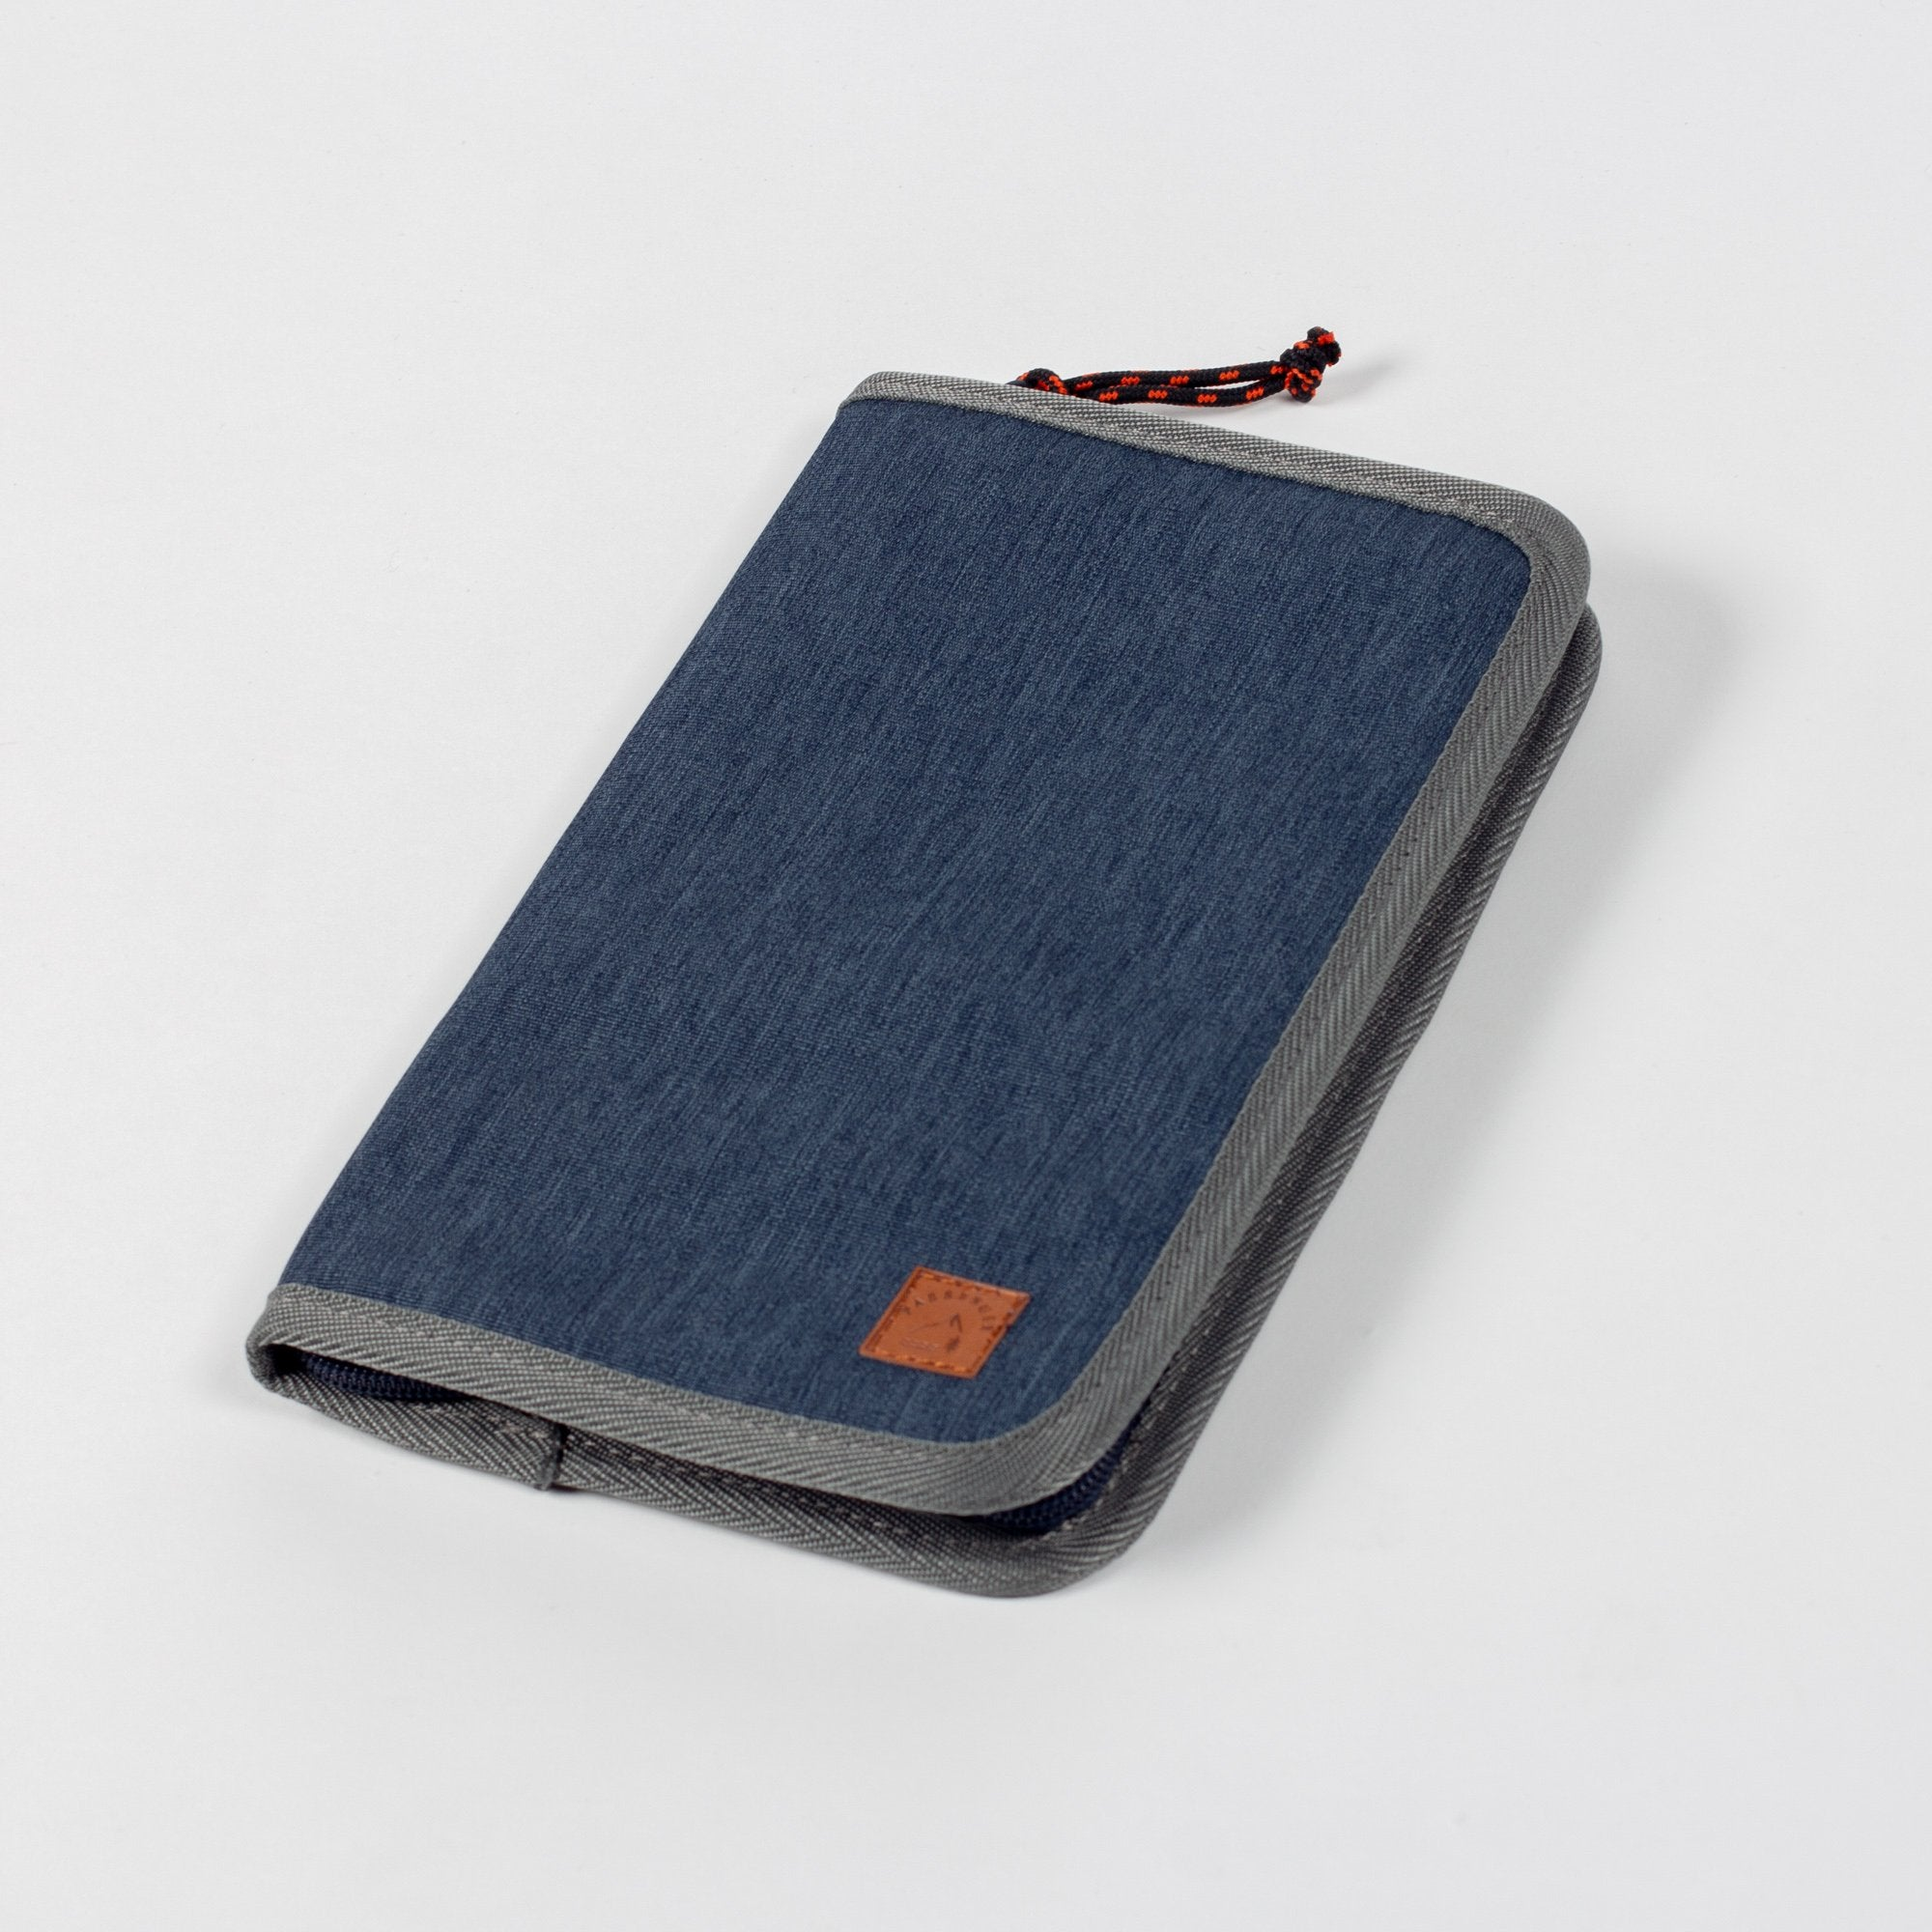 Raccoon Travel Organiser - Navy Marl image 3